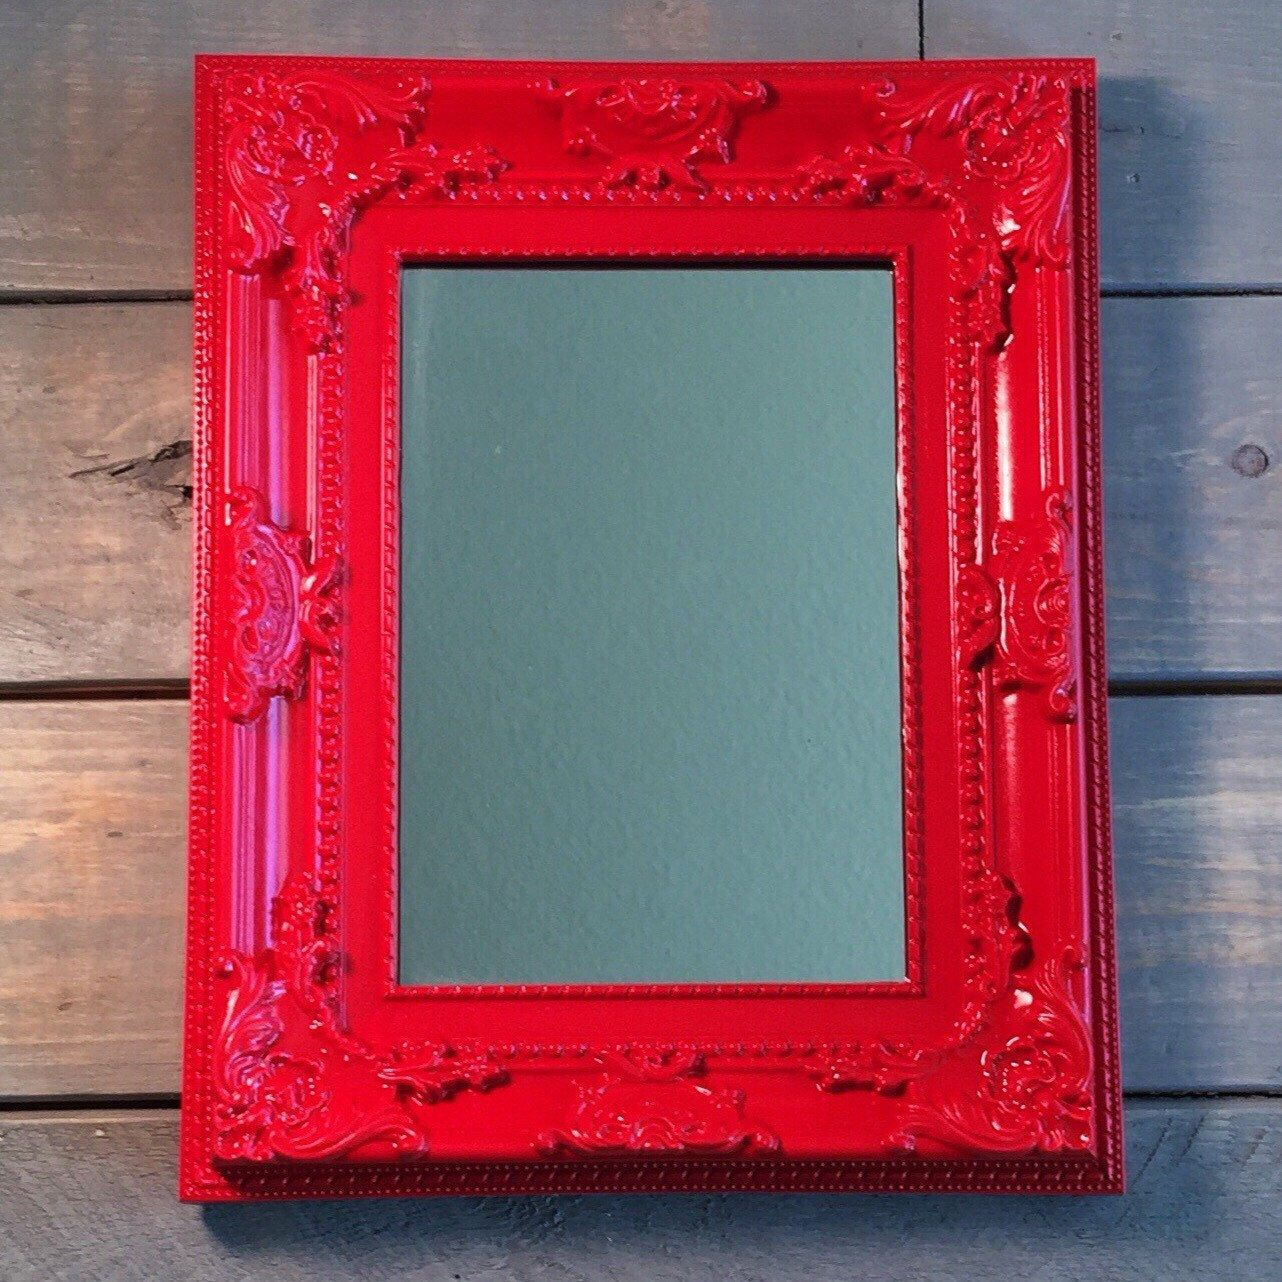 Red Baroque Mirror Wall Mirror Frame Ornate Decorative Wall Mirror